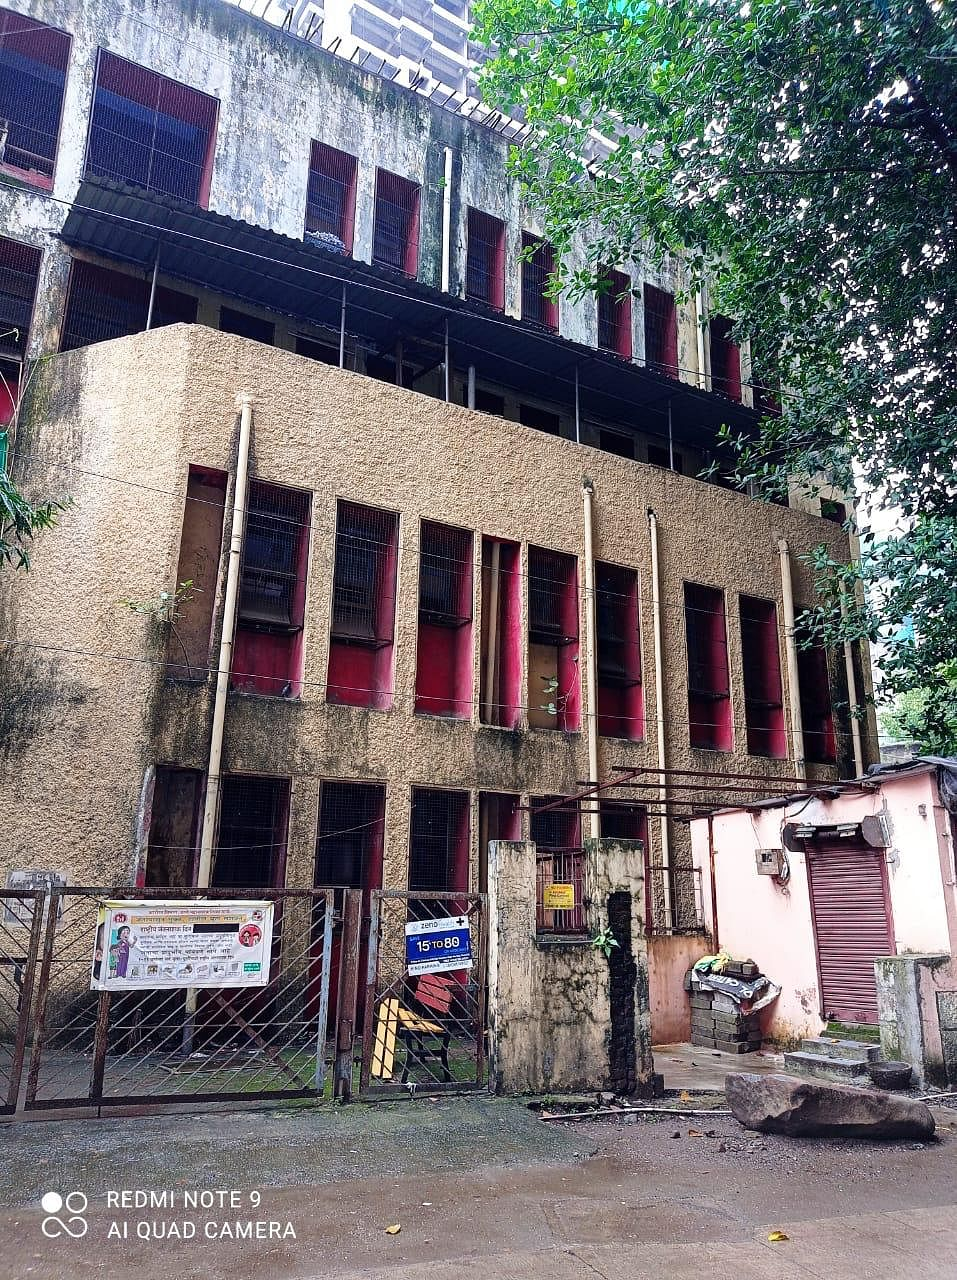 Thane: COVID vaccination centre closed for last 15 days as building in dilapidated condition